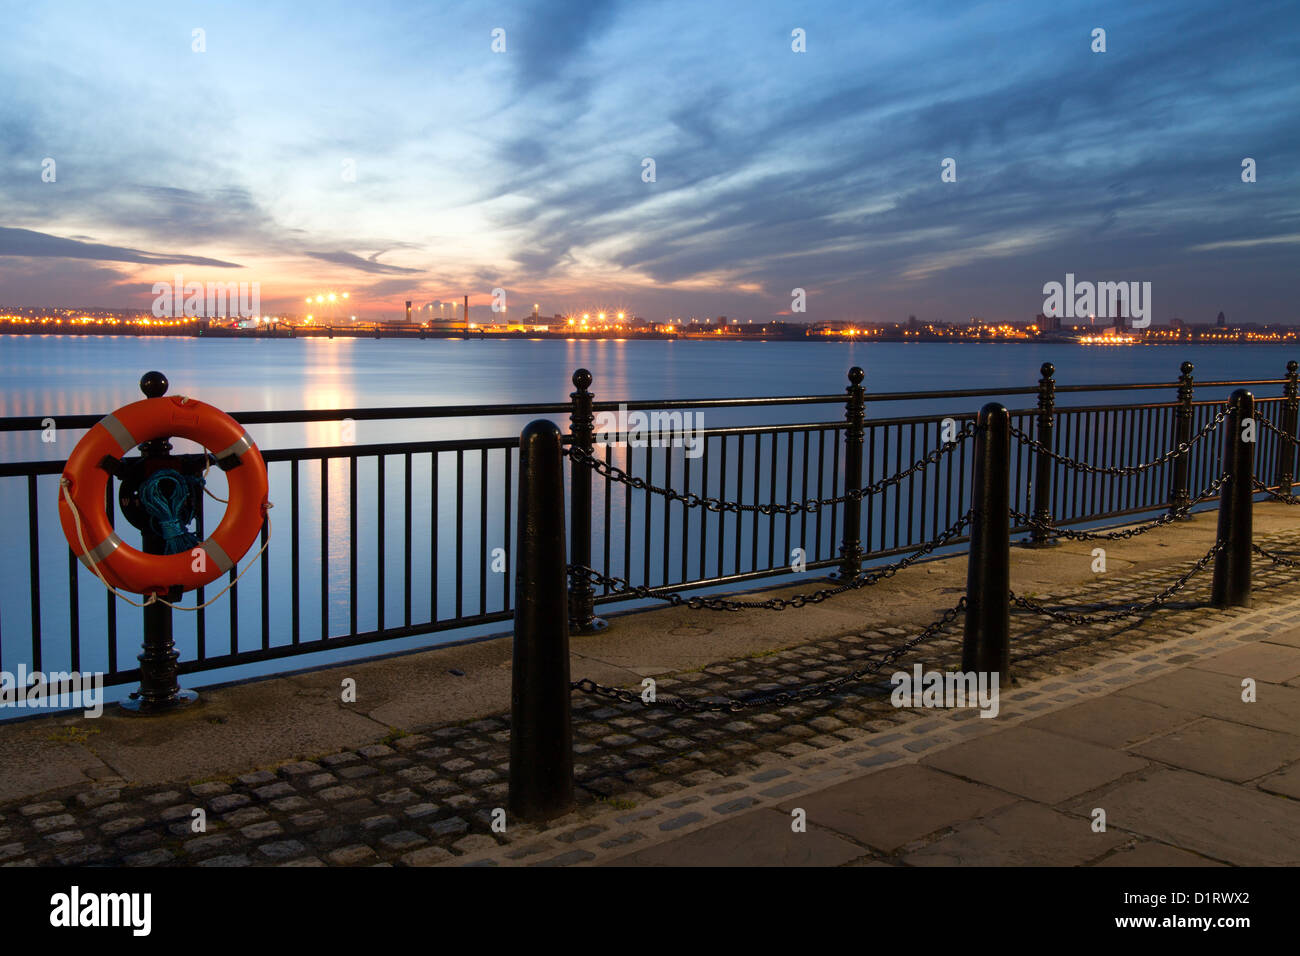 Night time Liverpool prom overlooking the River Mersey - Stock Image